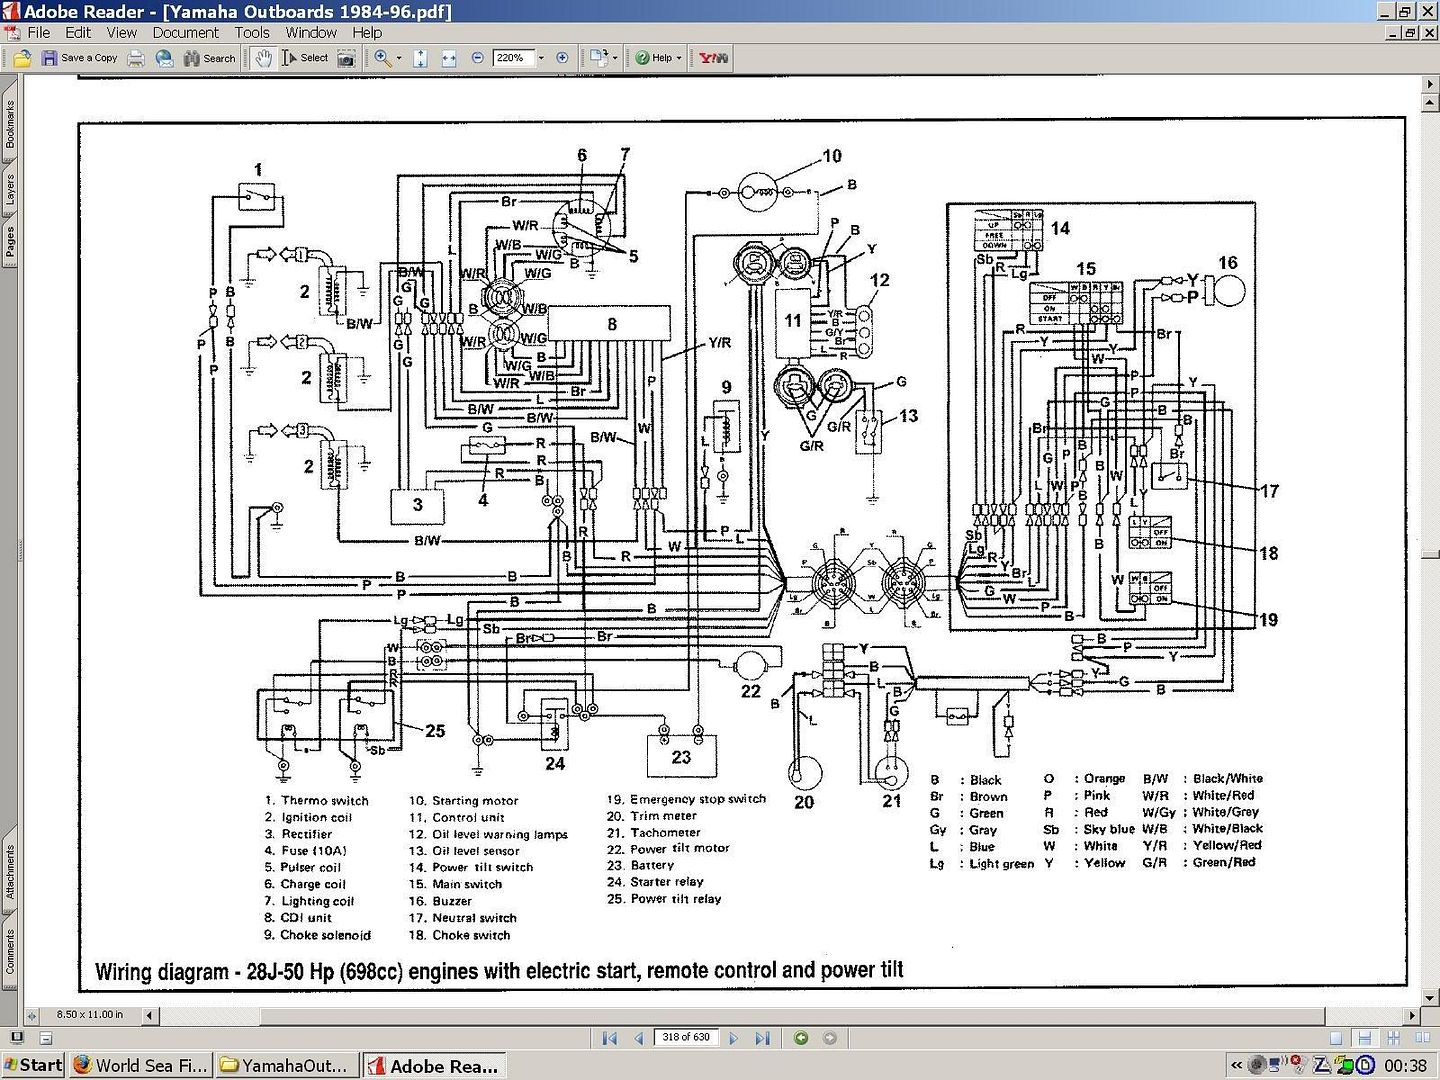 Memphis Crossover Wiring Diagram